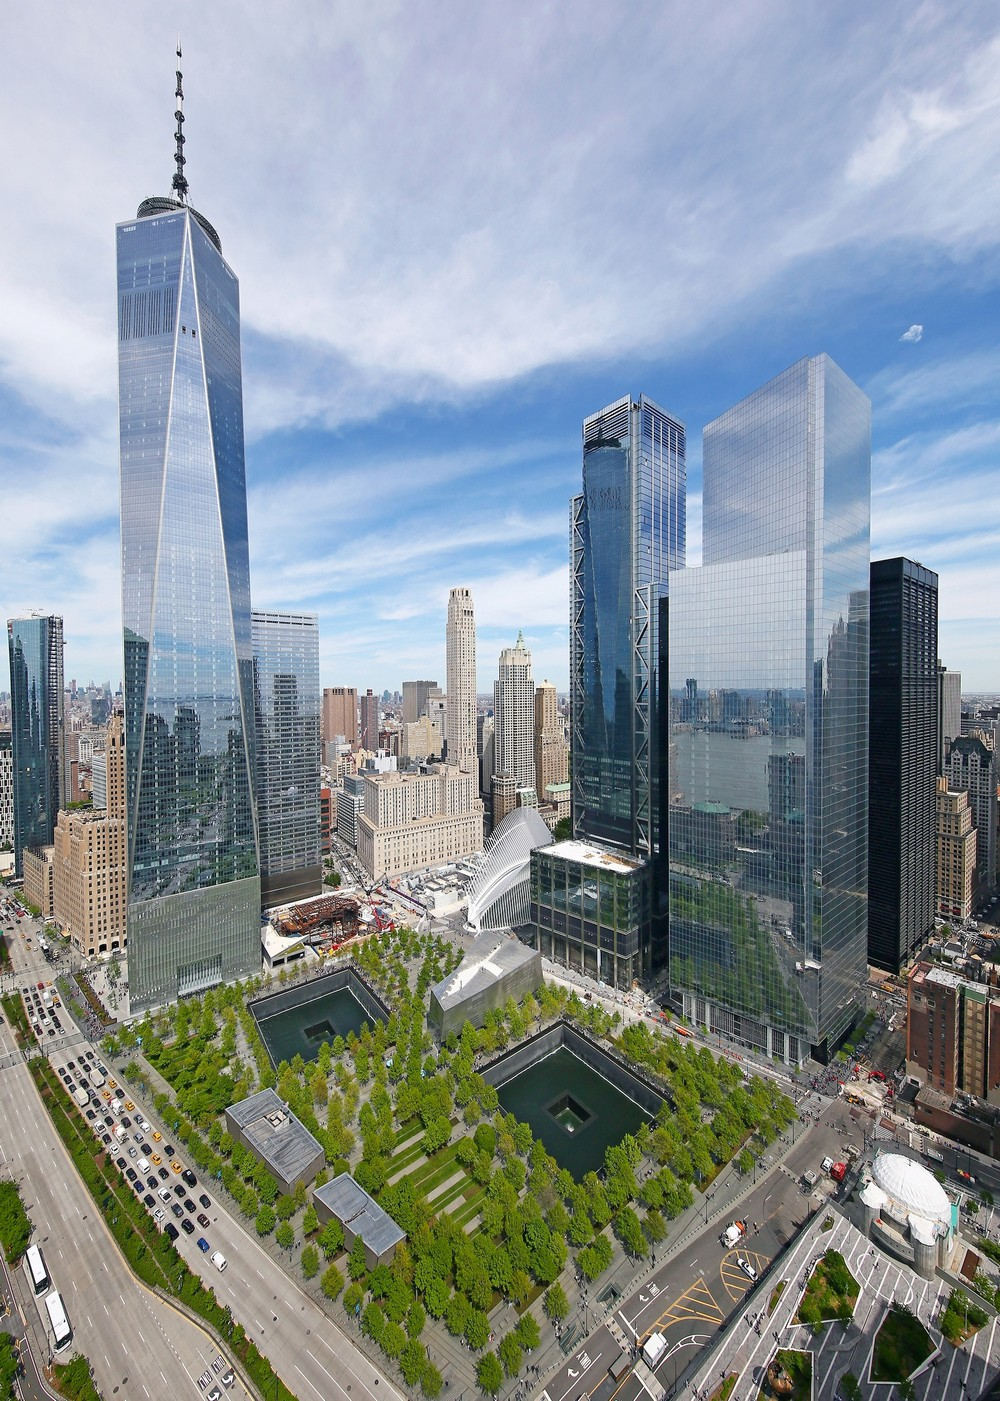 Take A Look At The Largest Development Projects In NYC